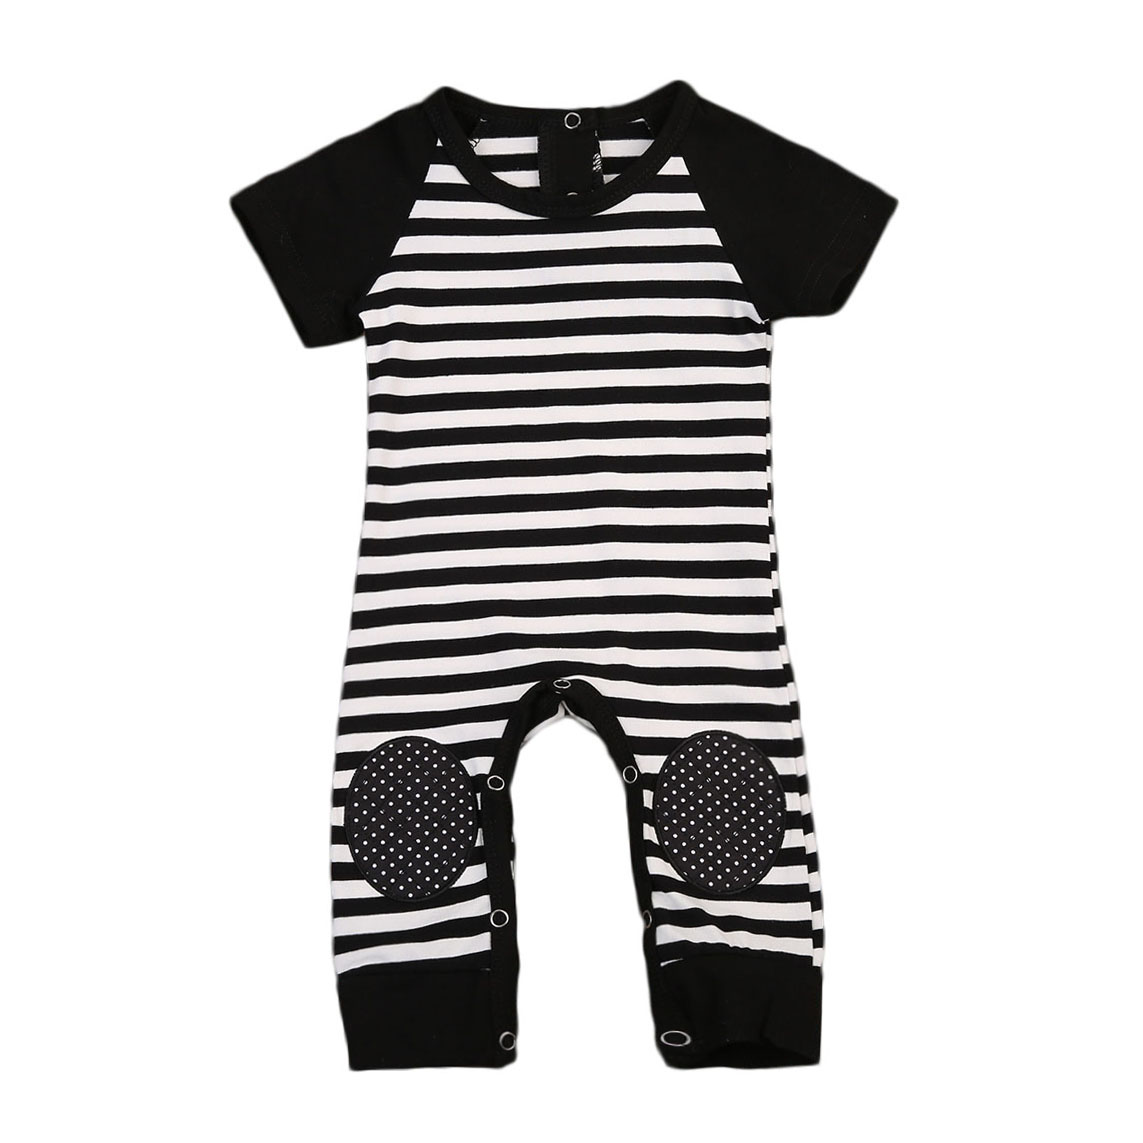 2017 Babies Boy Stripes Knee-Protective Rompers Newborn Infant Baby Boy Girl Romper Playsuit Outfits Striped Clothes Clothing gentlemen style striped baby boy romper playsuit